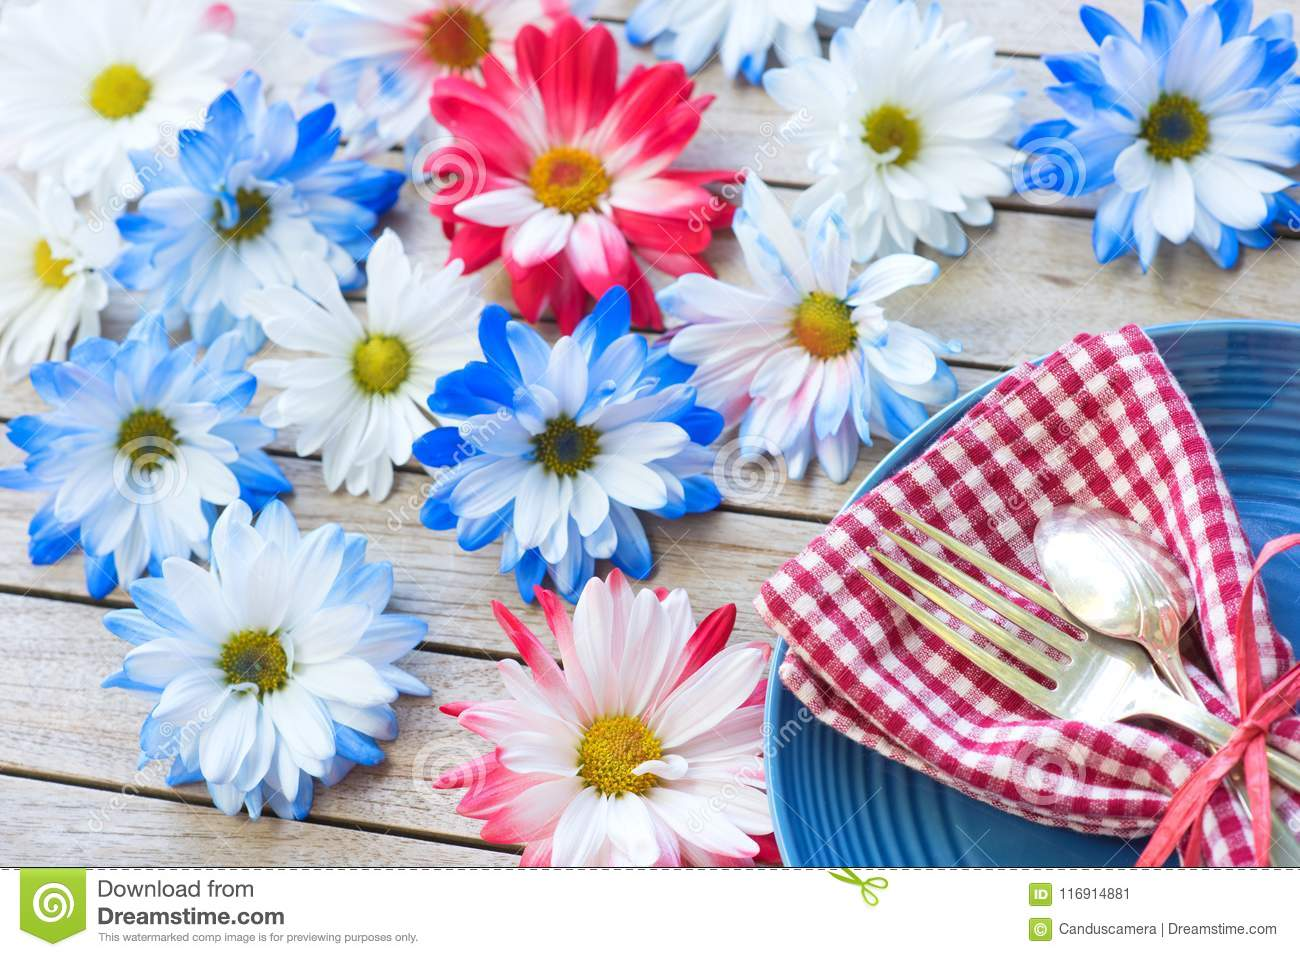 Picnic Table Setting in Red White and Blue Colors for July 4th Celebration on Wood Board Background Table with room or space for c